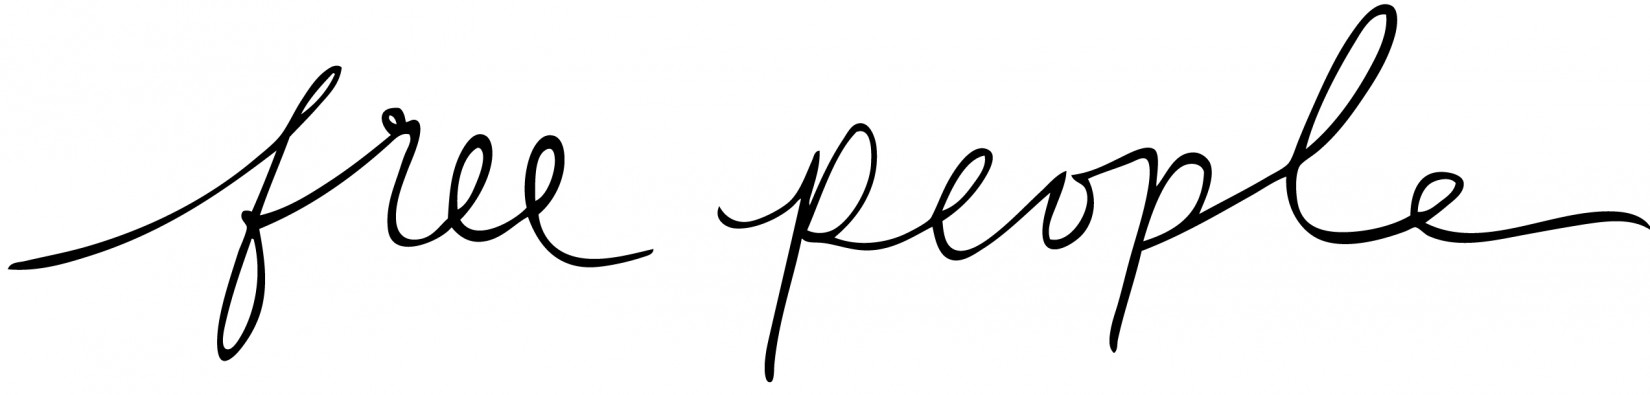 Image result for free people logo